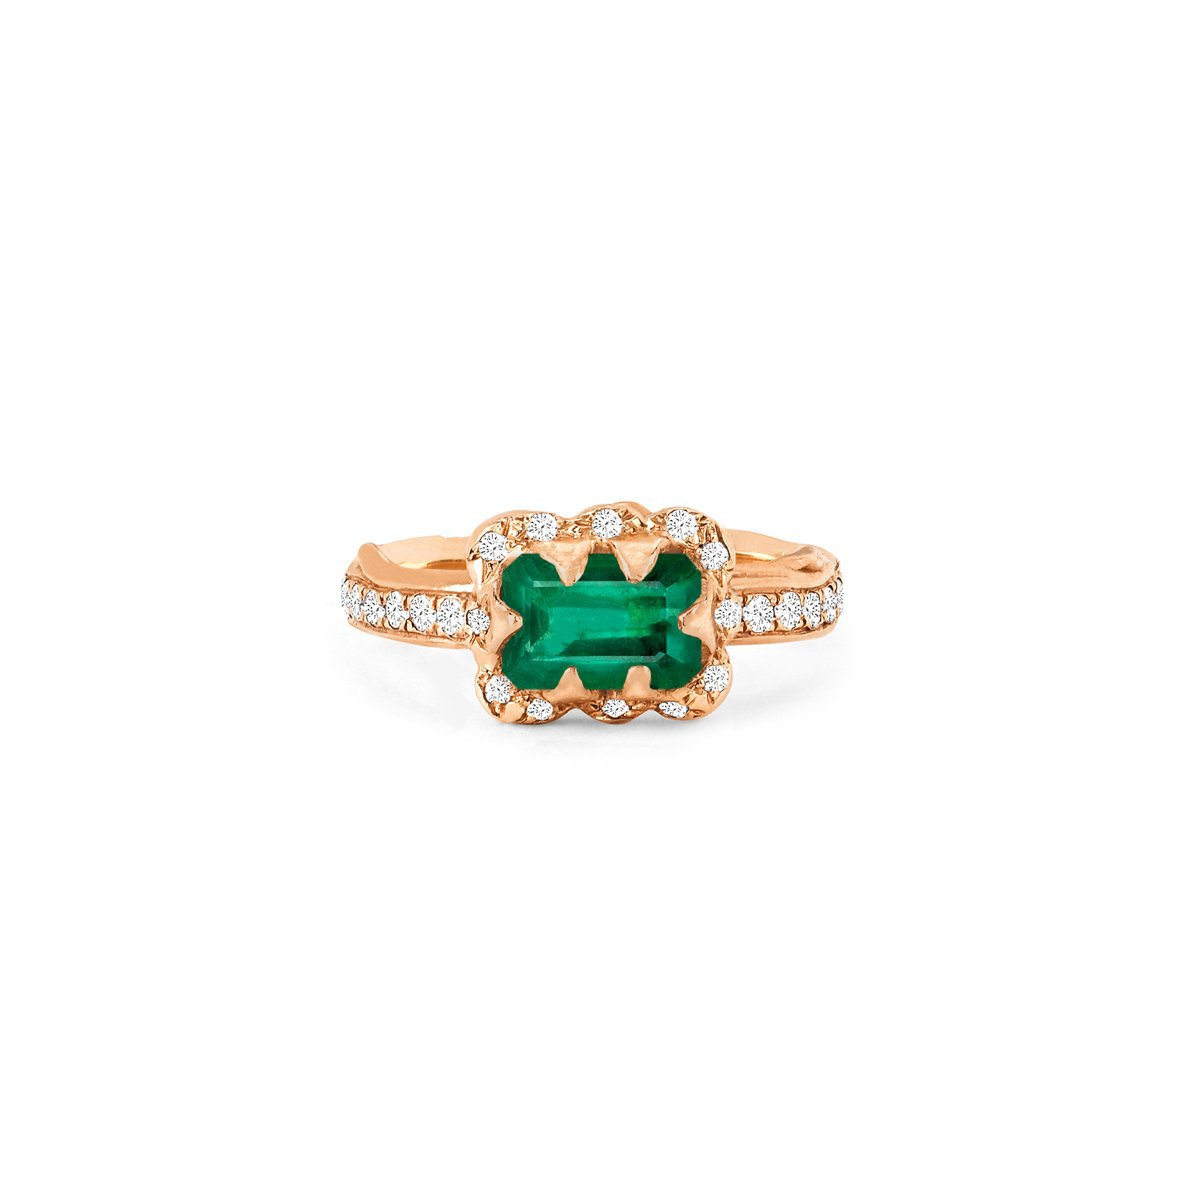 Micro Queen Emerald Cut Emerald Ring with Sprinkled Diamonds